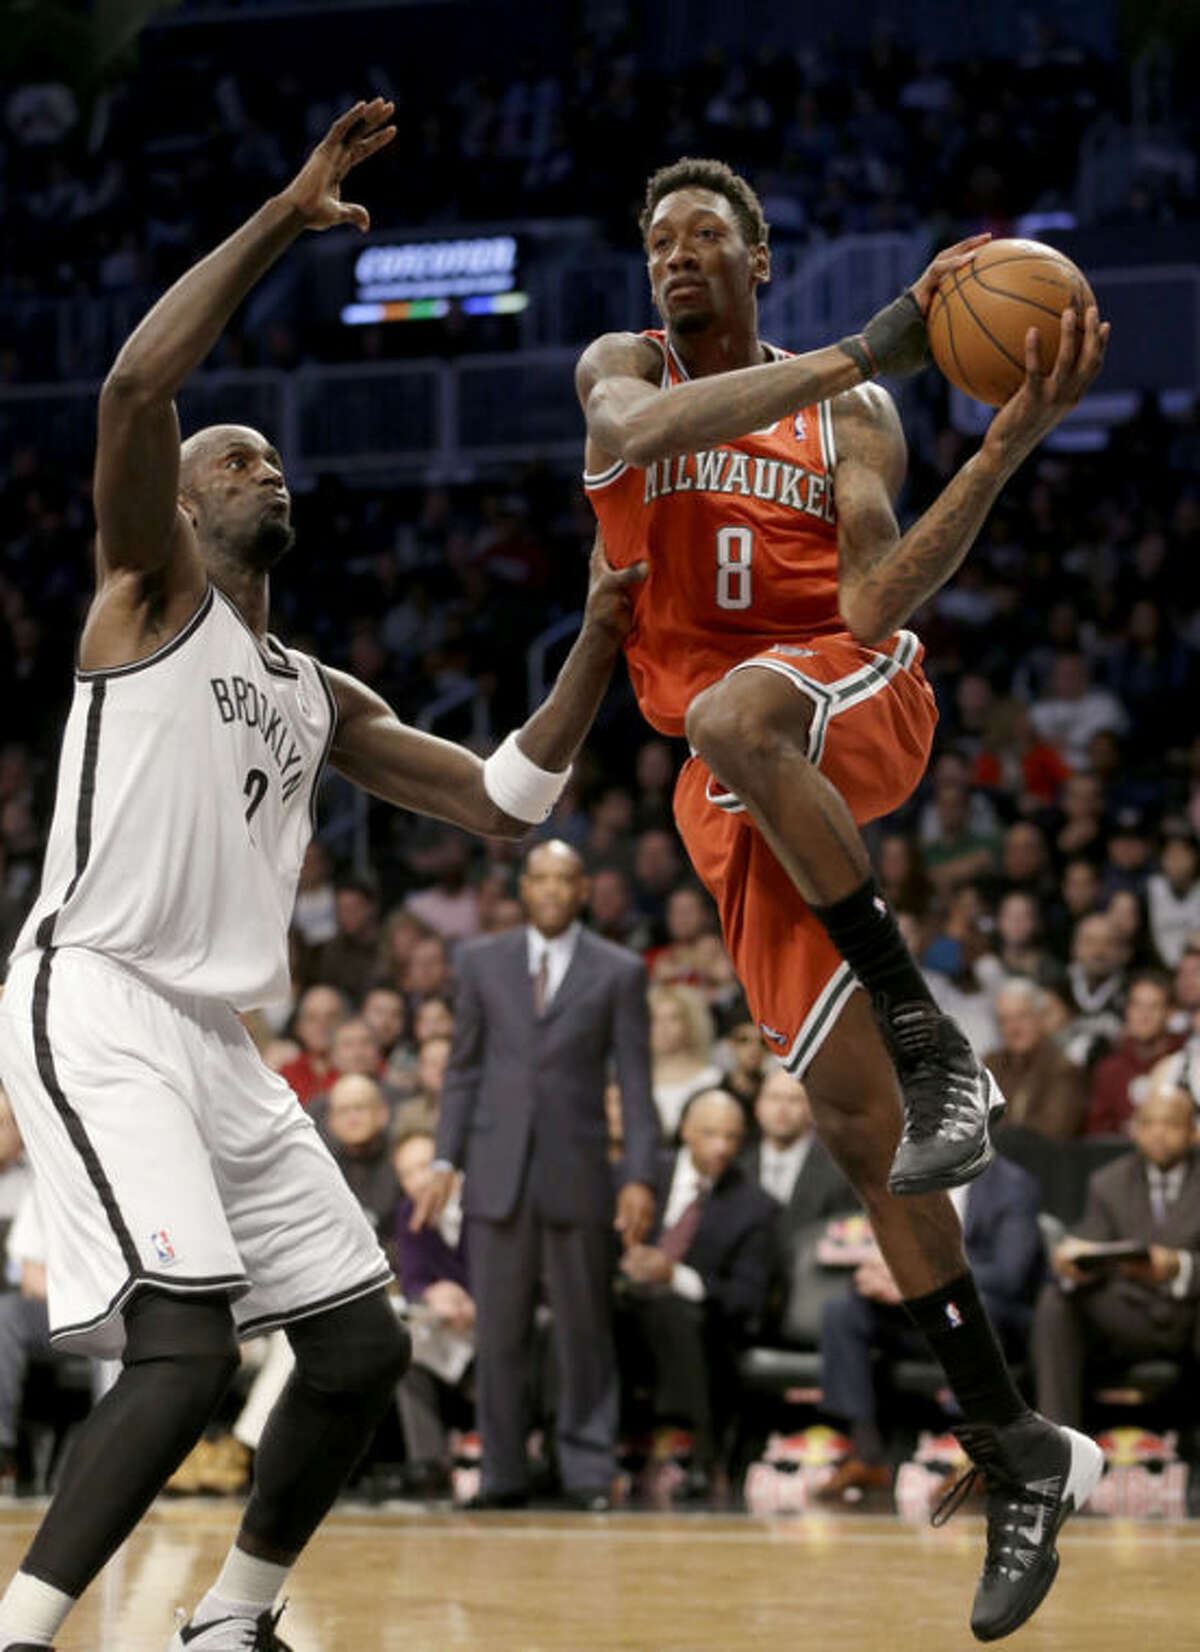 Milwaukee Bucks' Larry Sanders, right, passes around Brooklyn Nets' Kevin Garnett during the first half of an NBA basketball game at the Barclays Center, Friday, Dec. 27, 2013, in New York. (AP Photo/Seth Wenig)